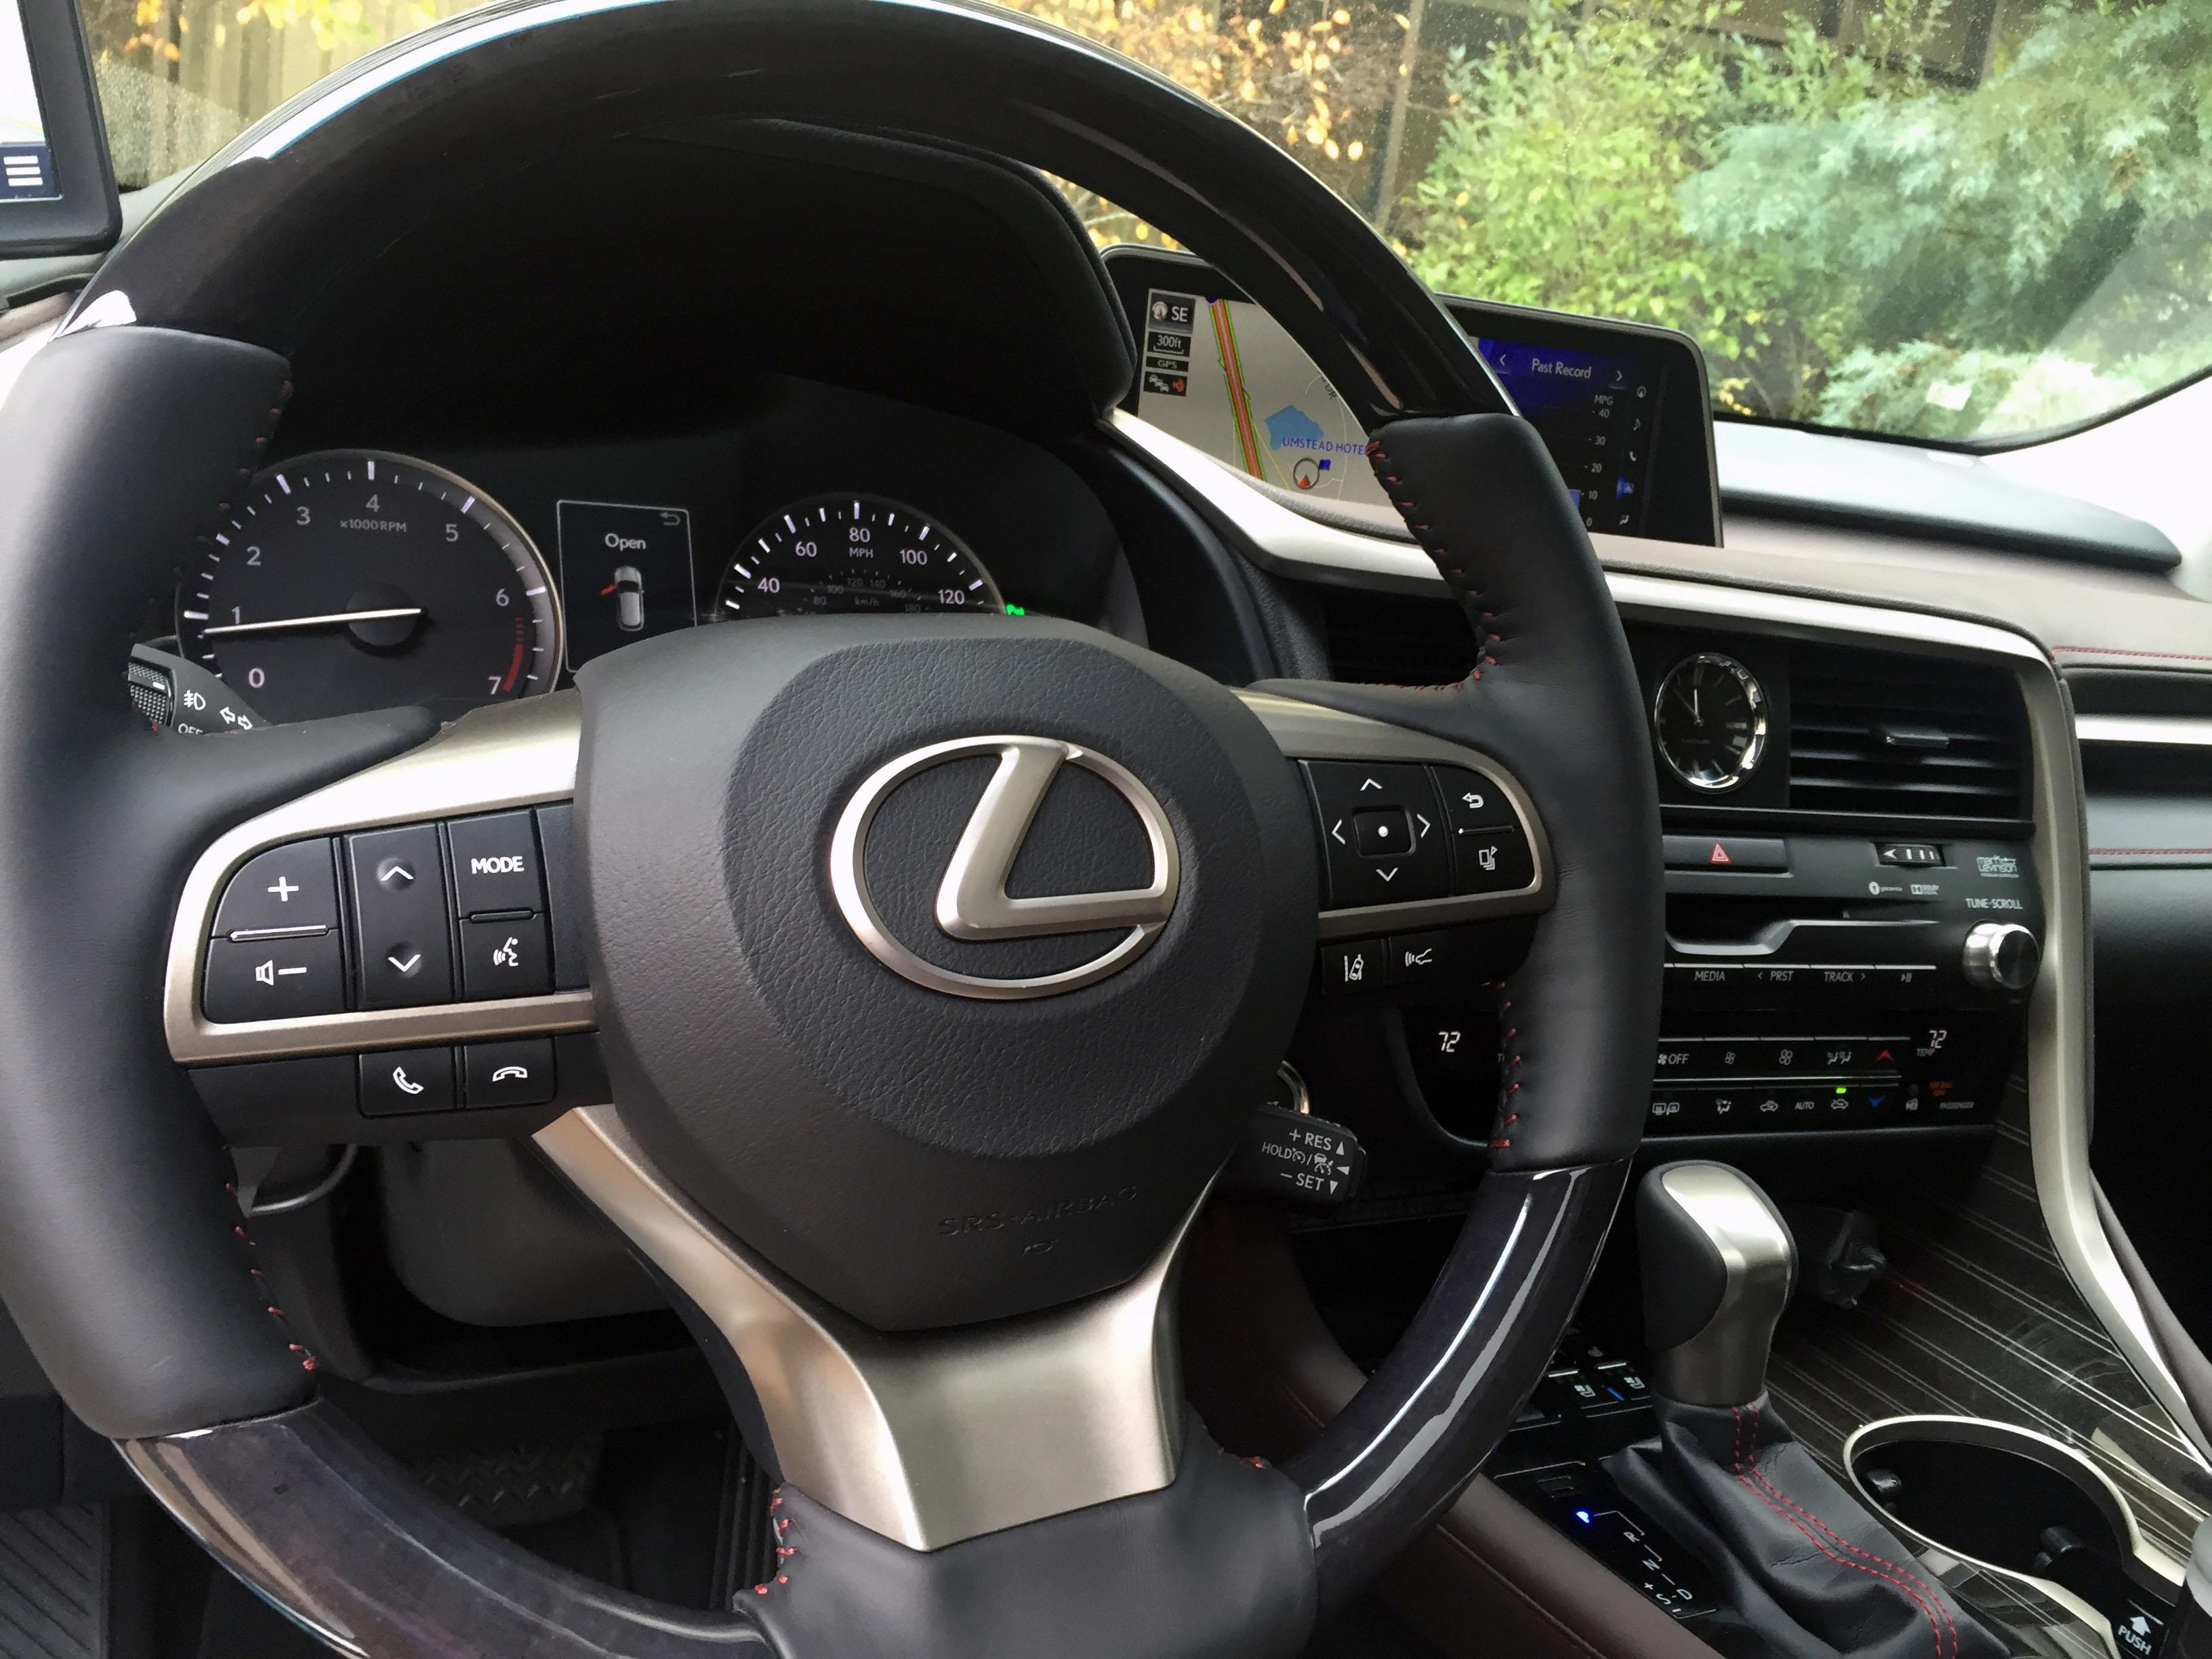 2016 Lexus RX steering wheel